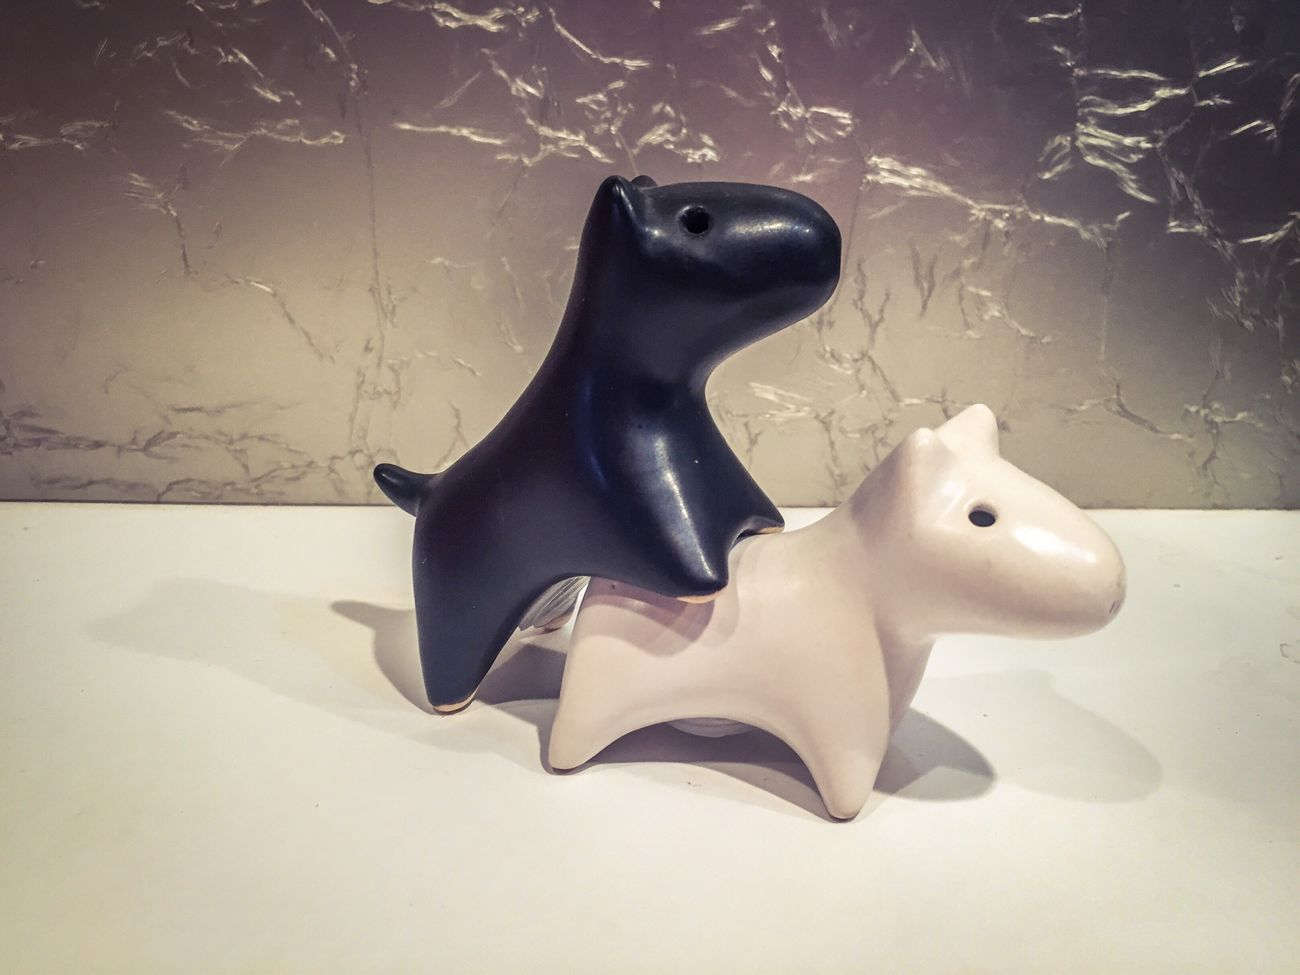 Salt And Pepper Cute Woof Woof Bullterrier Me My Camera And I Salt And Pepper Shakers Doggy Love Doggystlye Showcase March EyeEm Best Shots